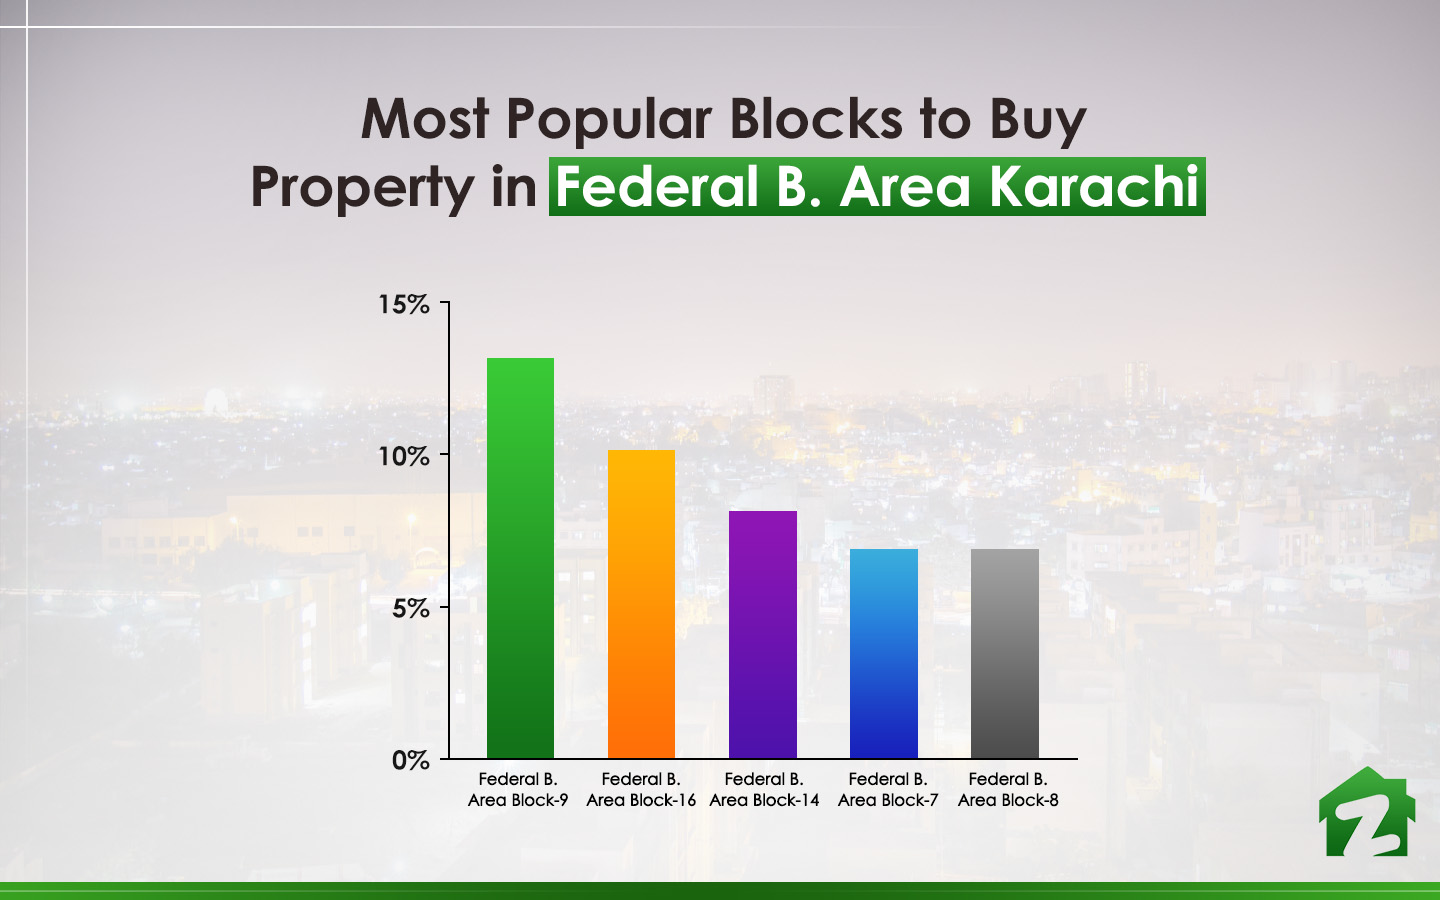 popular blocks for buying property in F.B Area